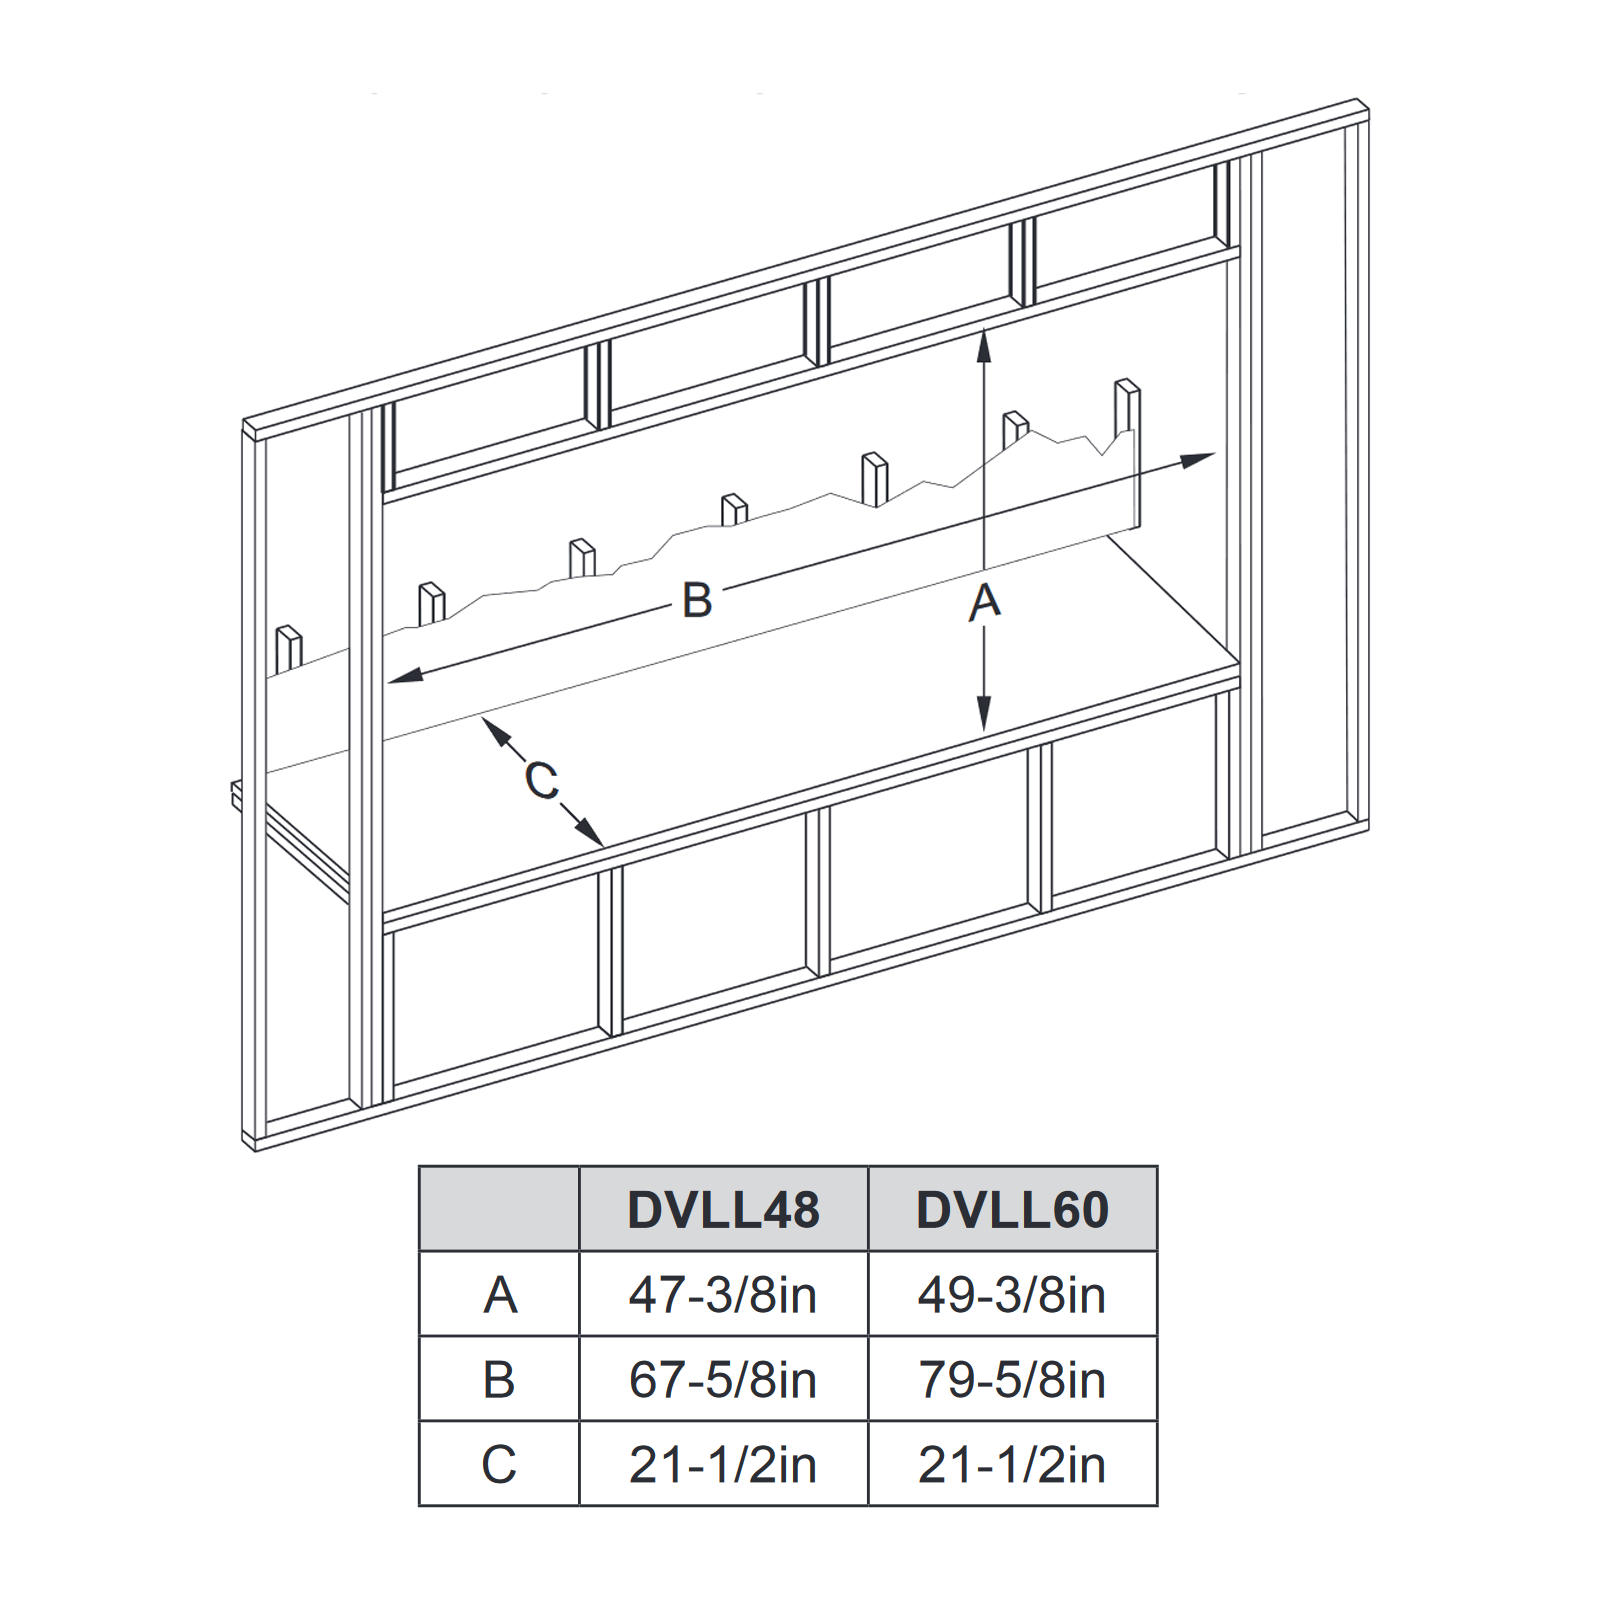 DVLL48 Technical Drawing 2